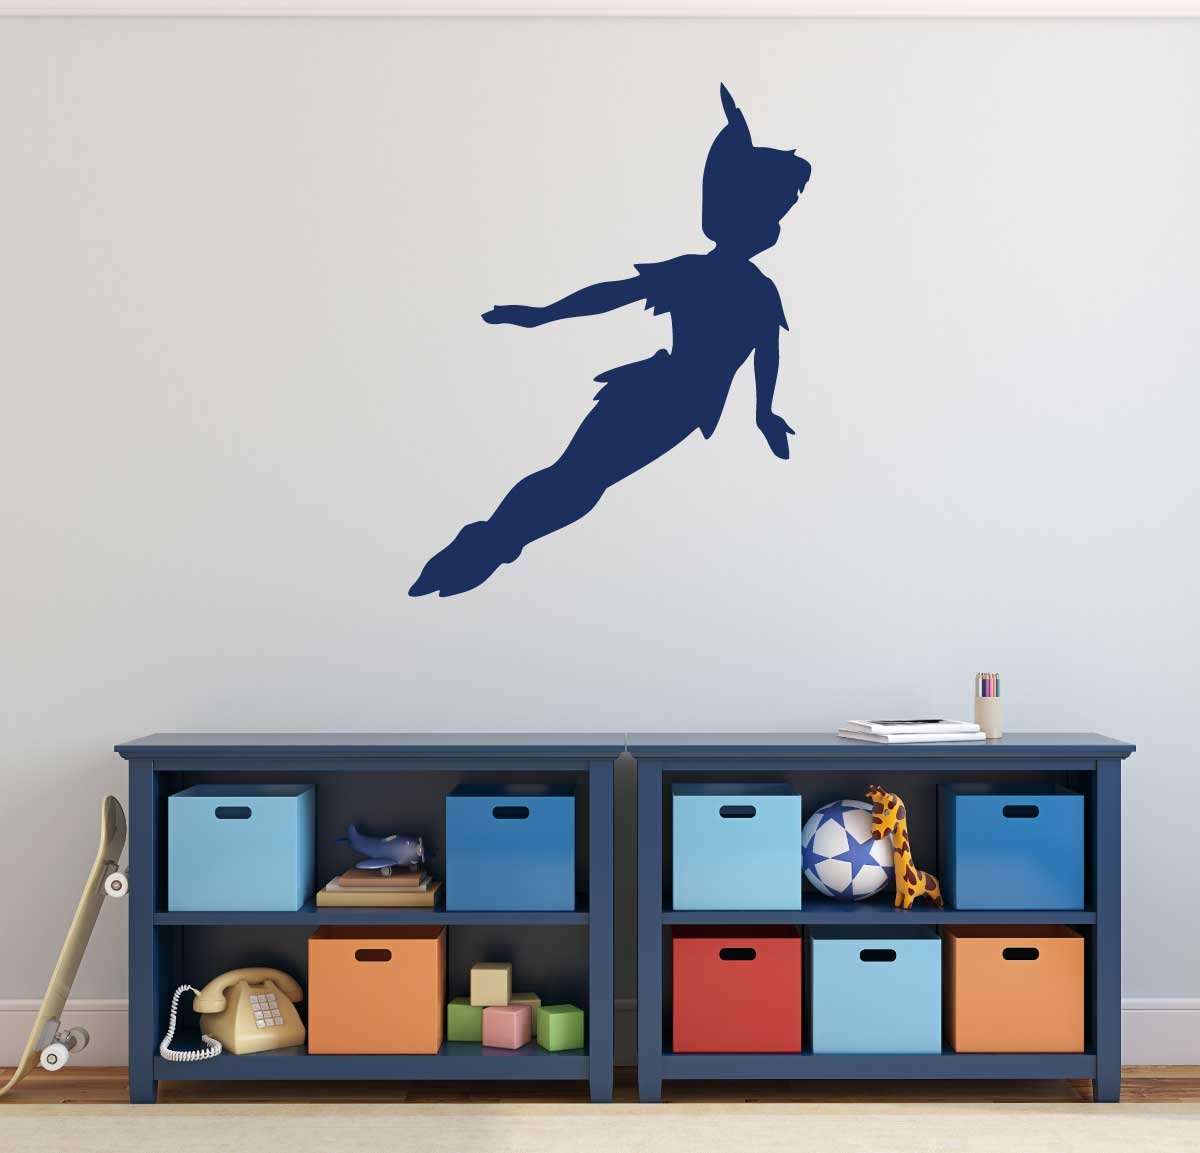 Amazon.com: Peter Pan Wall Decal Vinyl Sticker, Disney Flying To Neverland  Character Art Silhouette For Kids Playroom, Bedroom, Nursery: Handmade